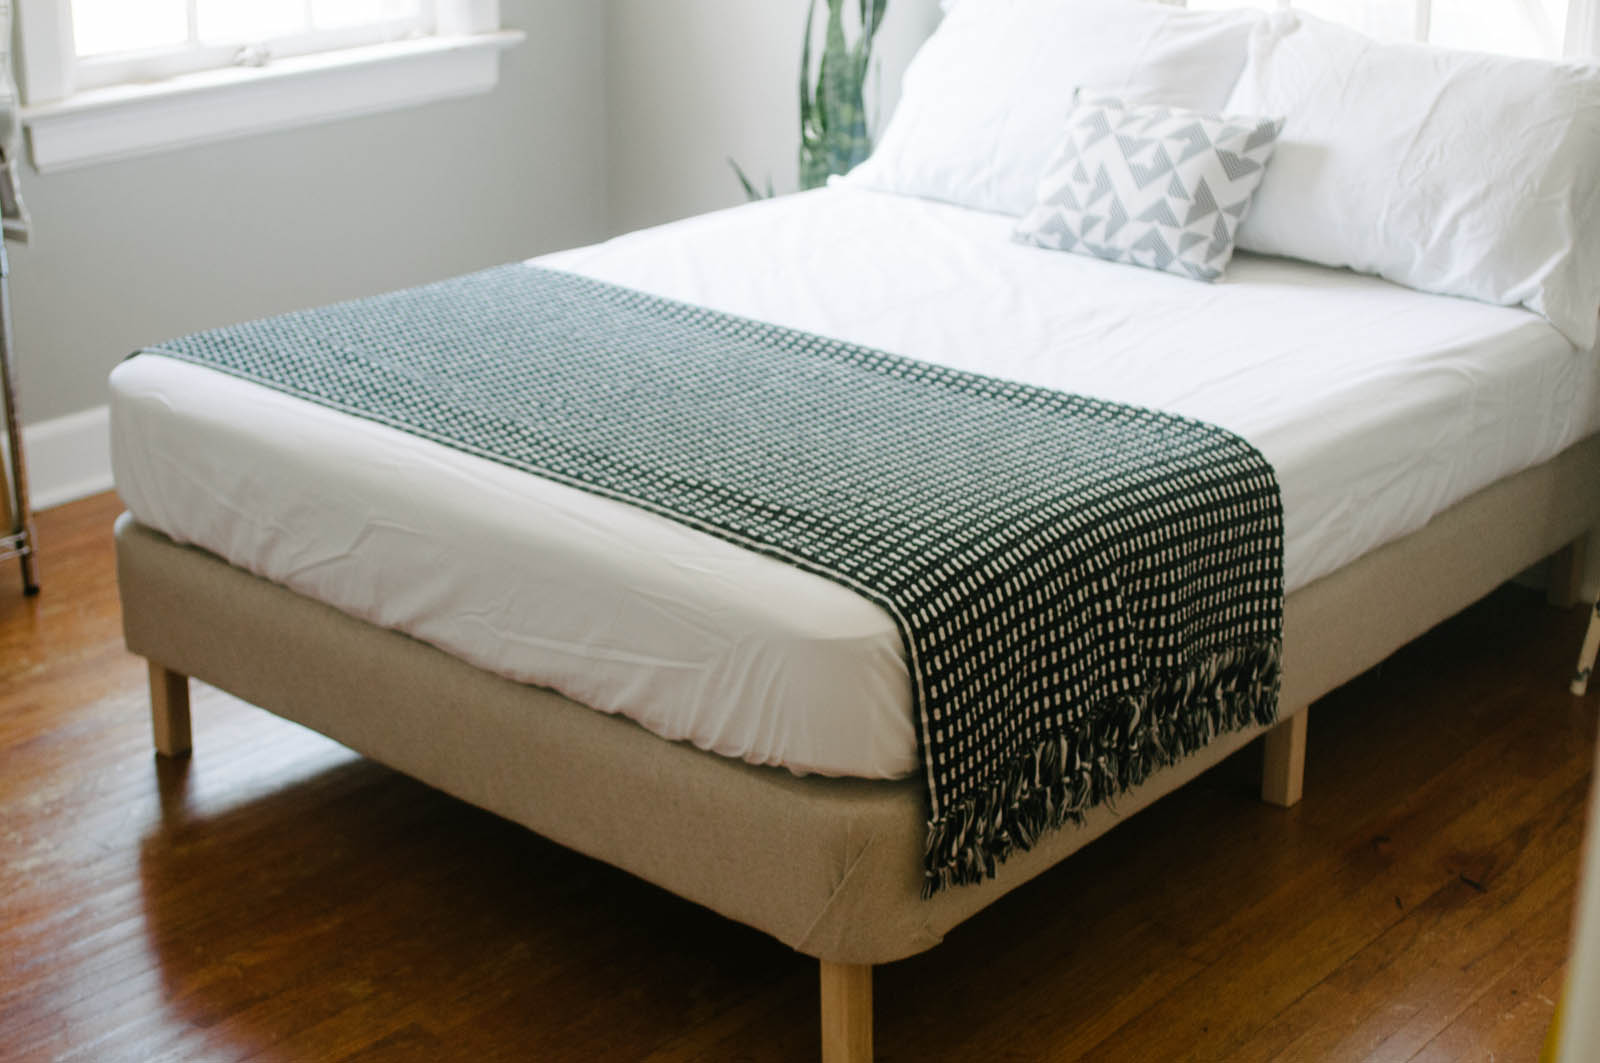 21 Diy Bed Frames To Give Yourself The Restful Spot Of